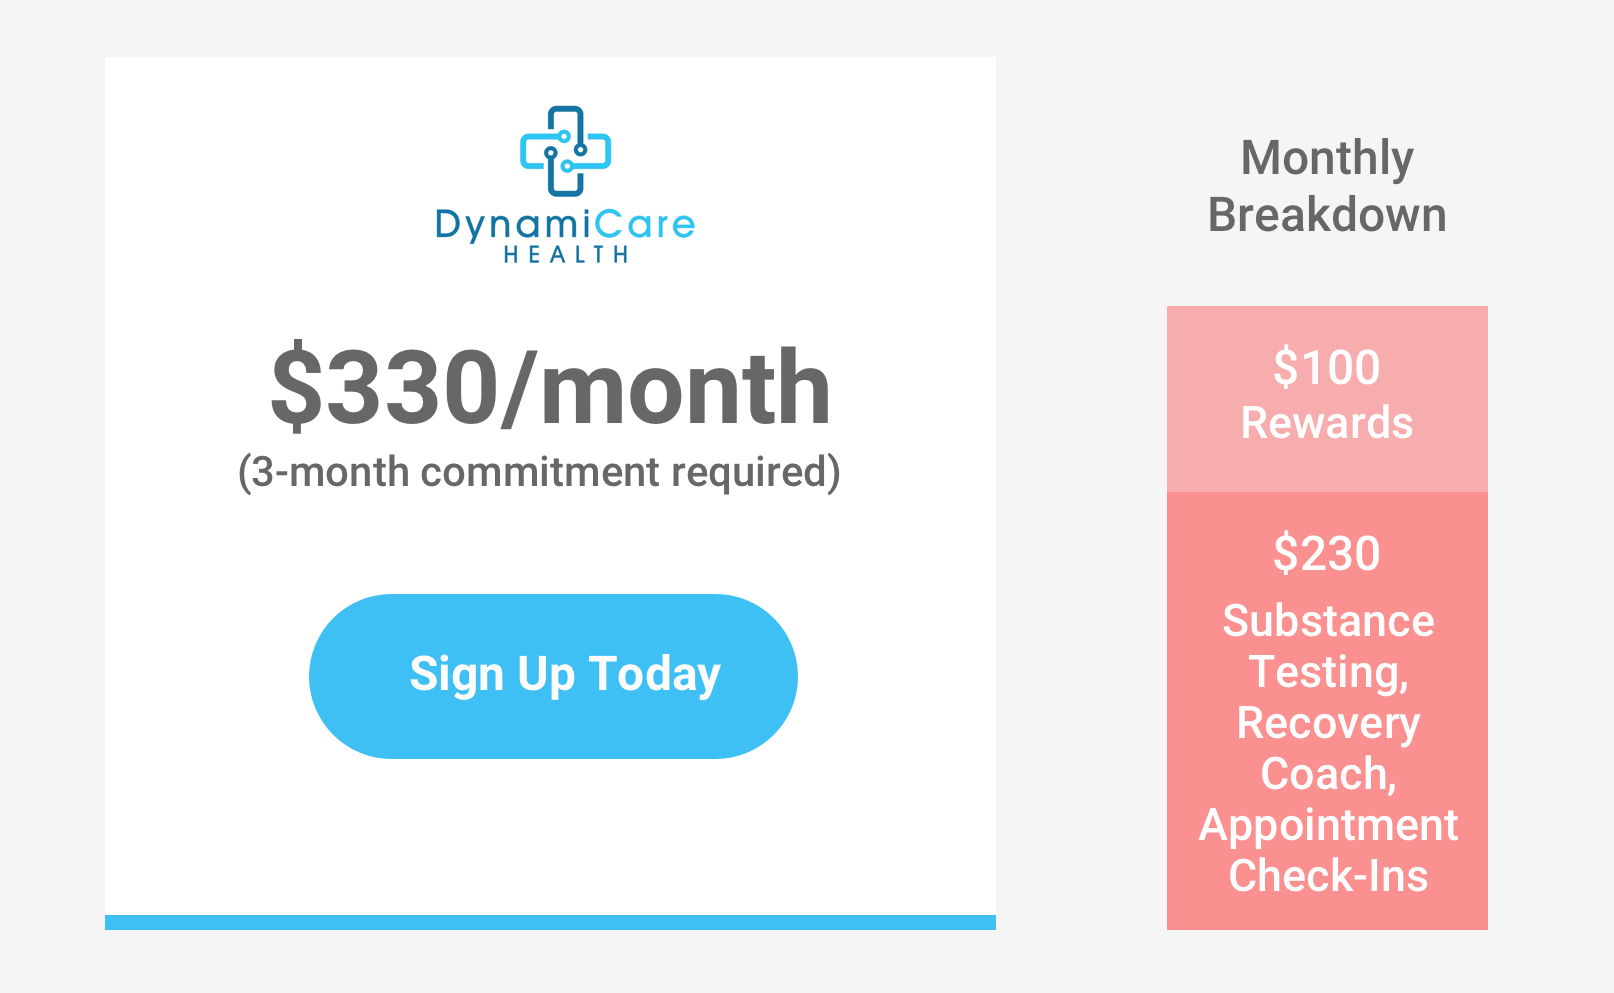 DynamiCare_Pricing Solo@3x (1).jpg